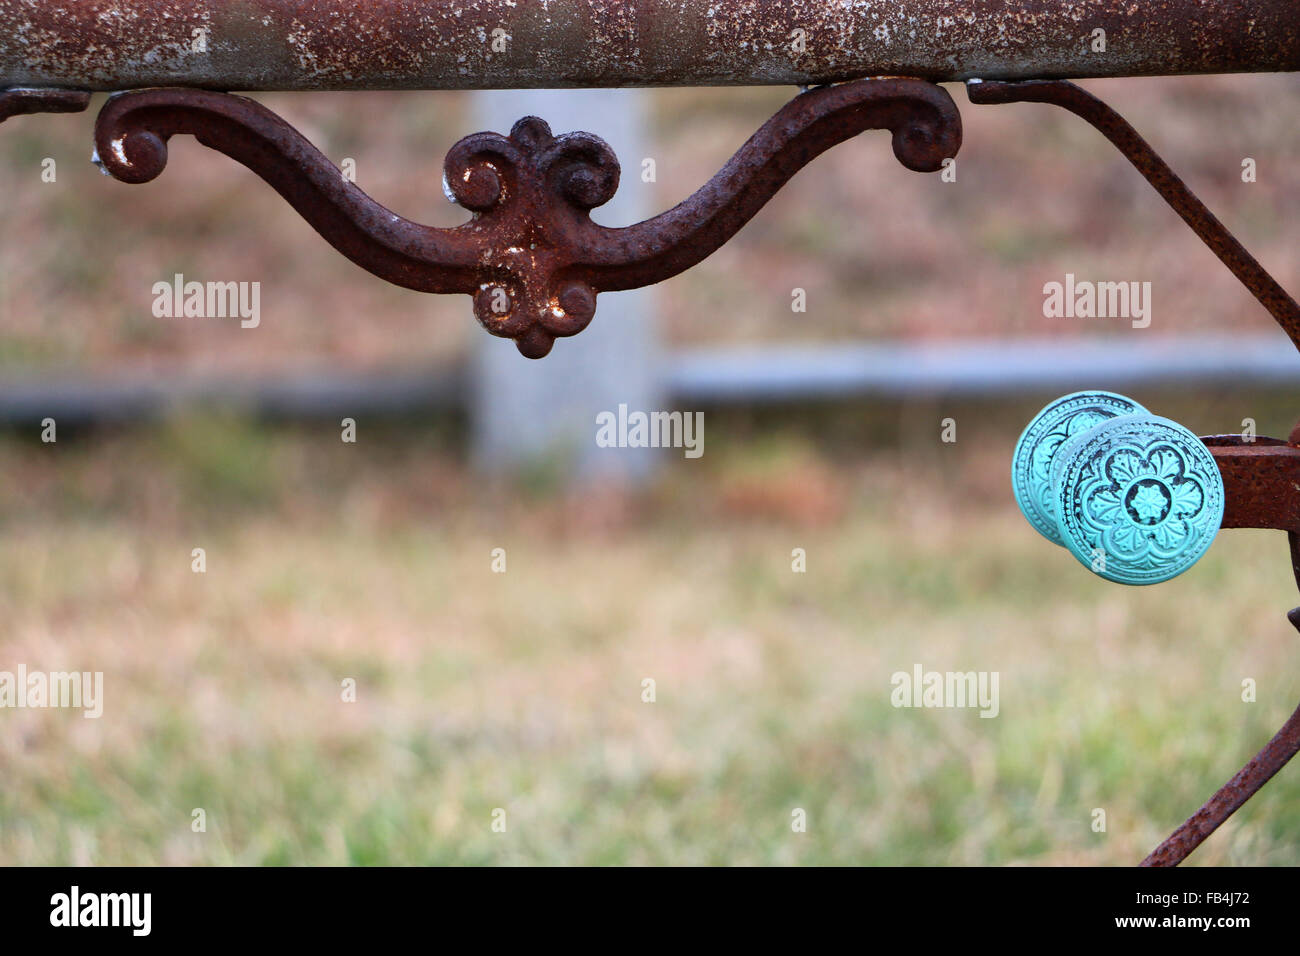 Oxidized Copper Stock Photos & Oxidized Copper Stock Images - Alamy